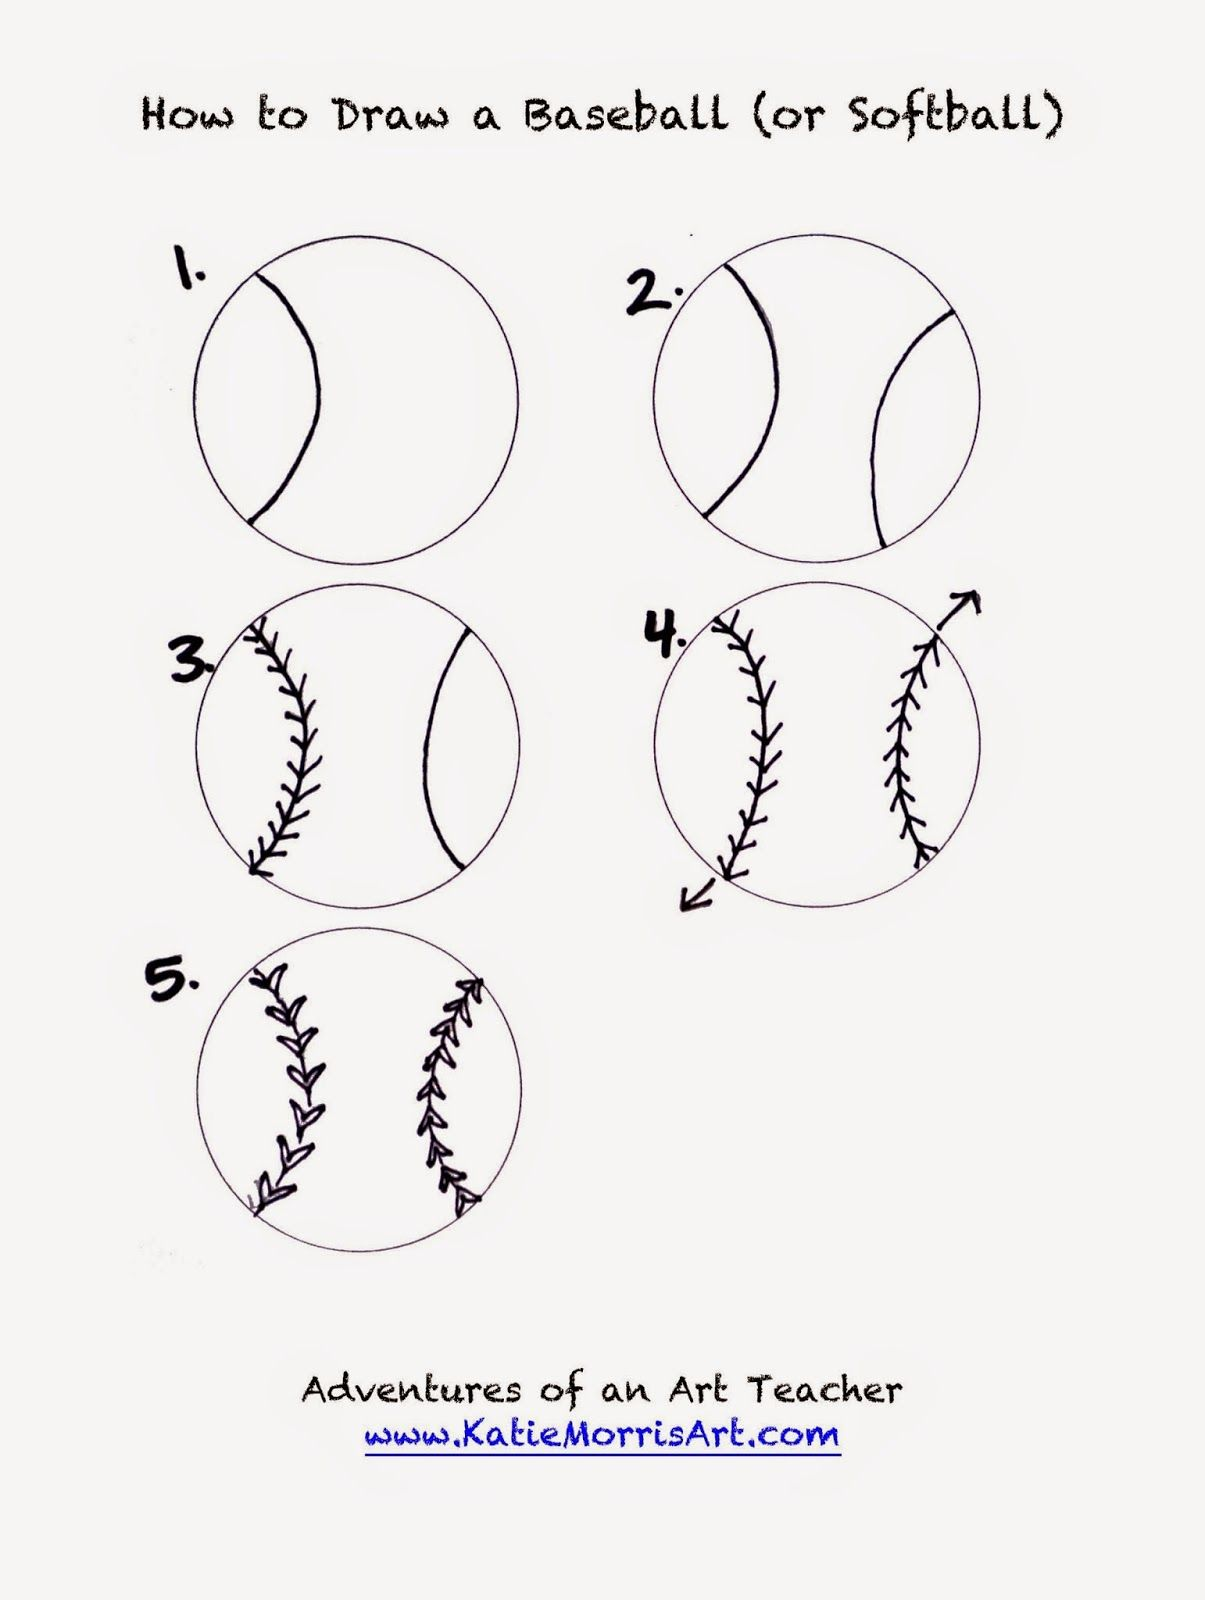 How To Draw Sports Sports Drawings Baseball Drawings Drawings